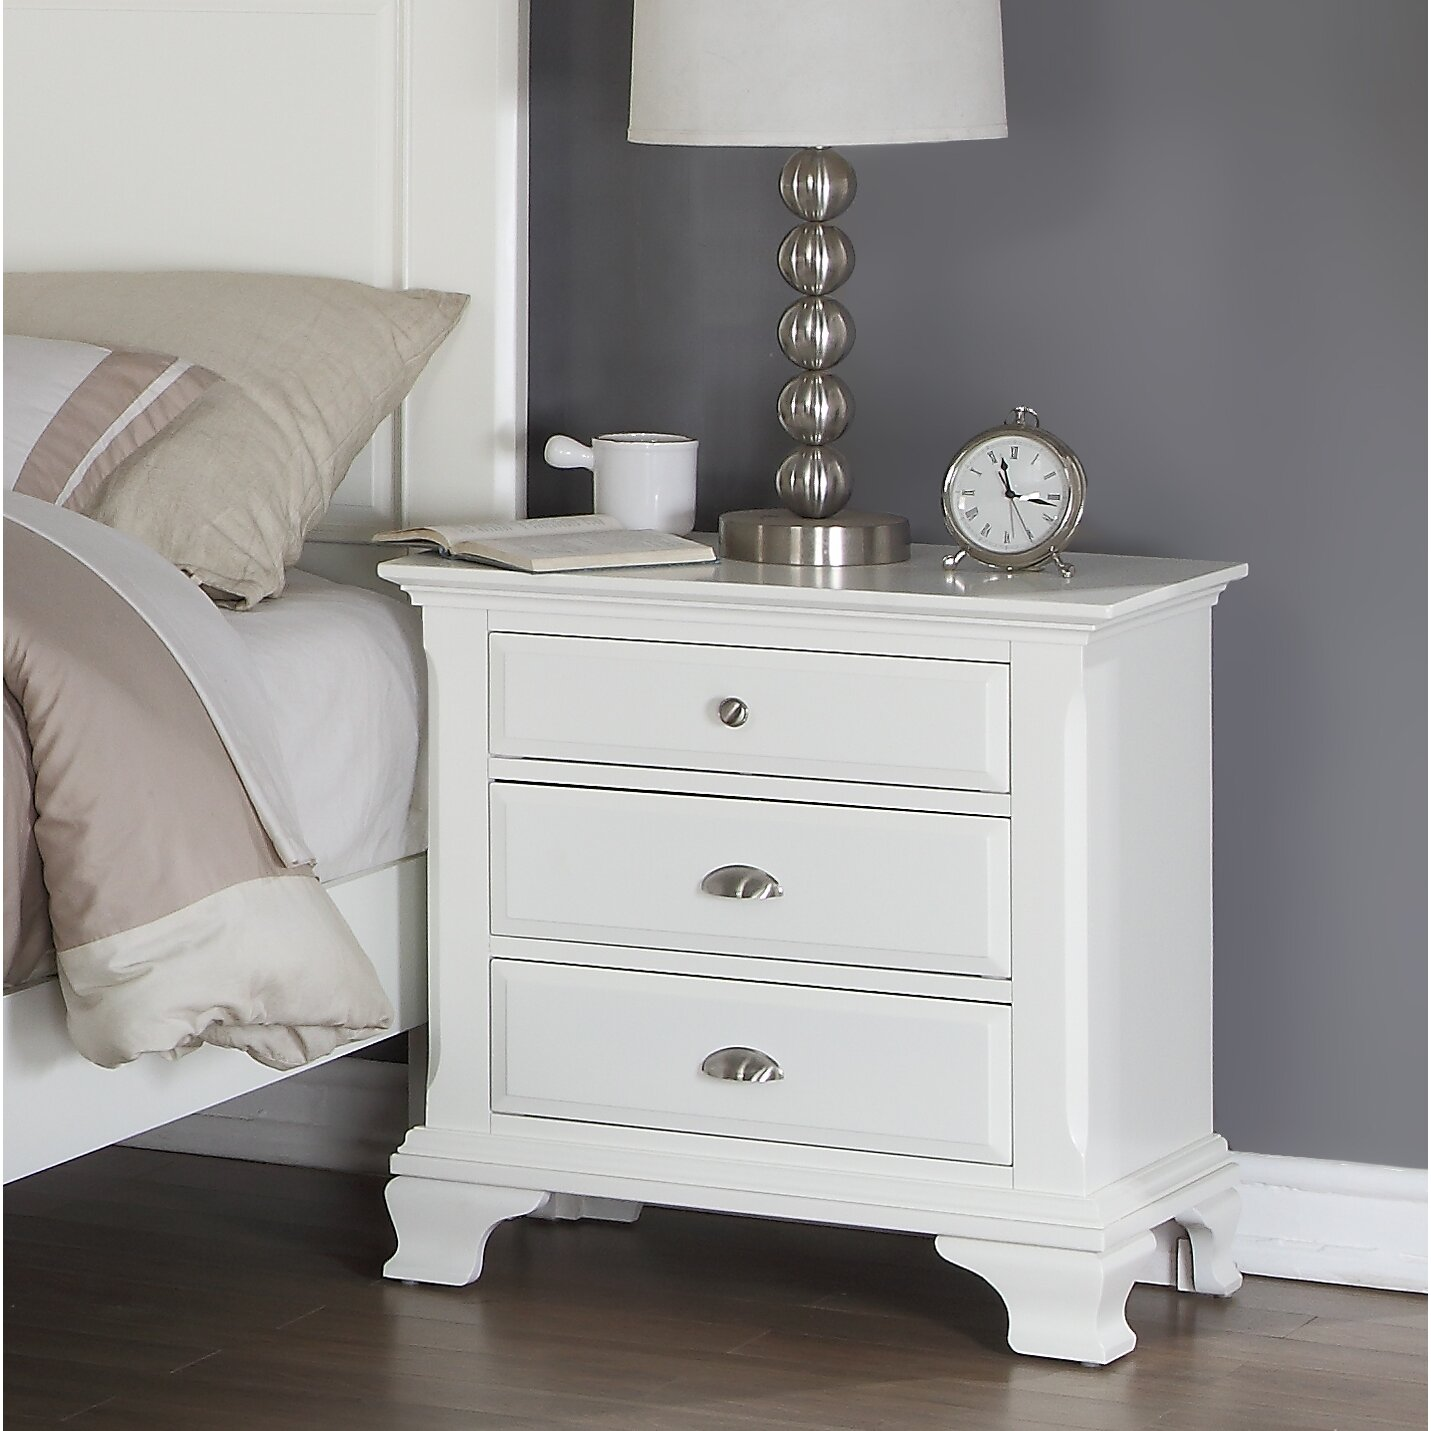 Roundhill furniture leveno panel 5 piece bedroom set - White and wood bedroom furniture ...